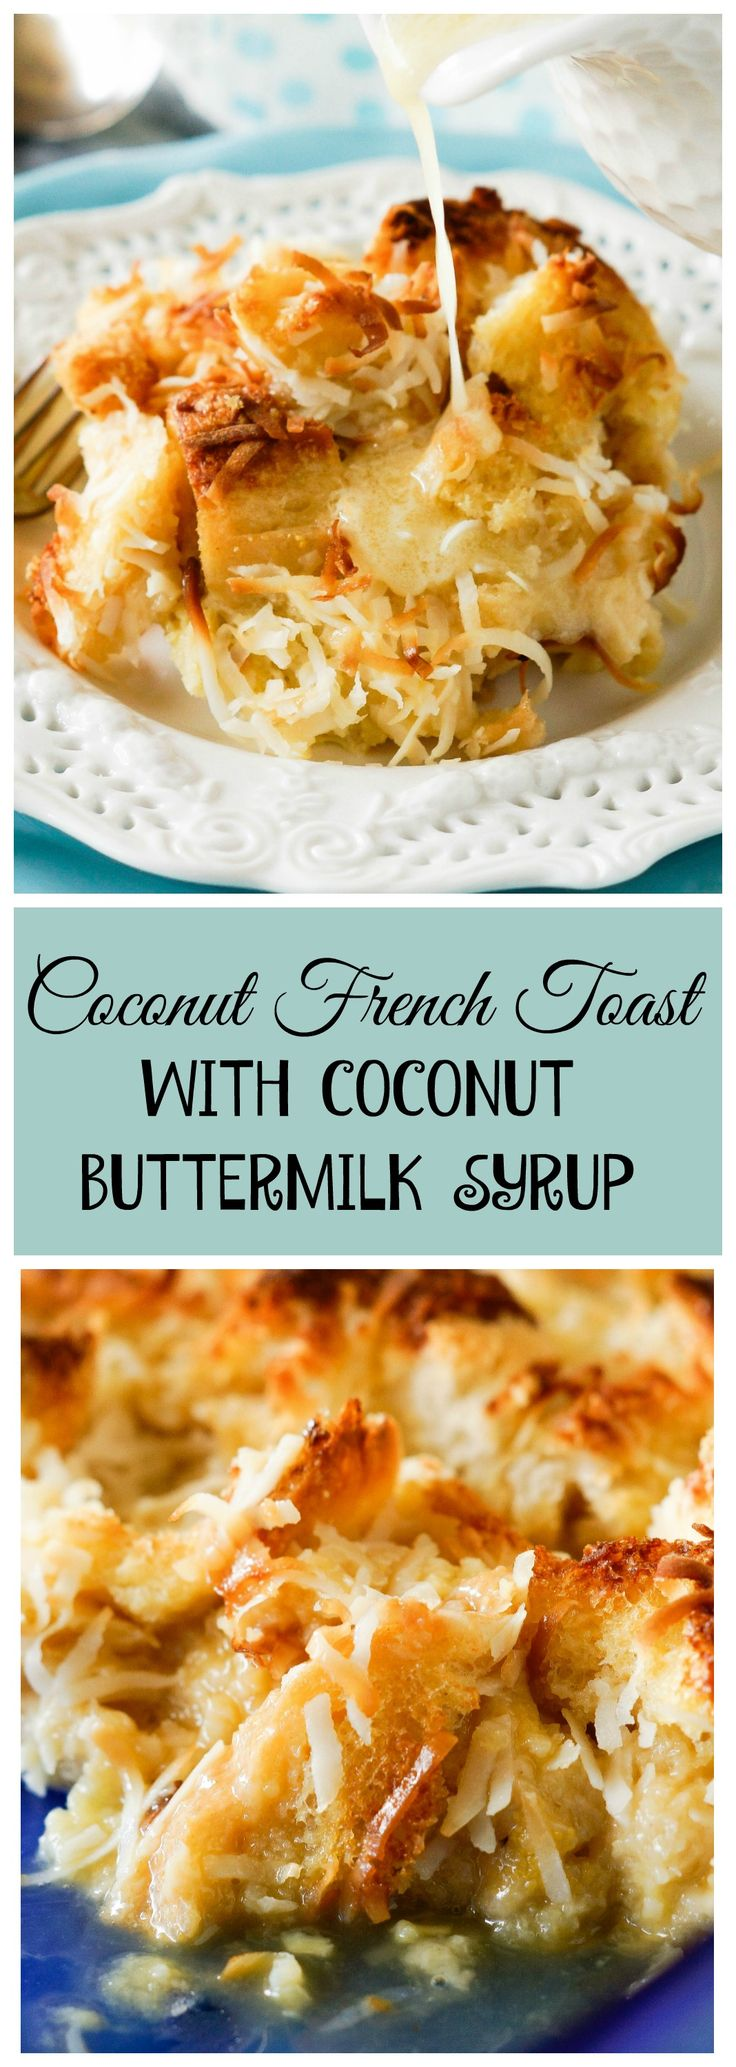 Coconut French Toast Bake with Coconut Buttermilk Syrup